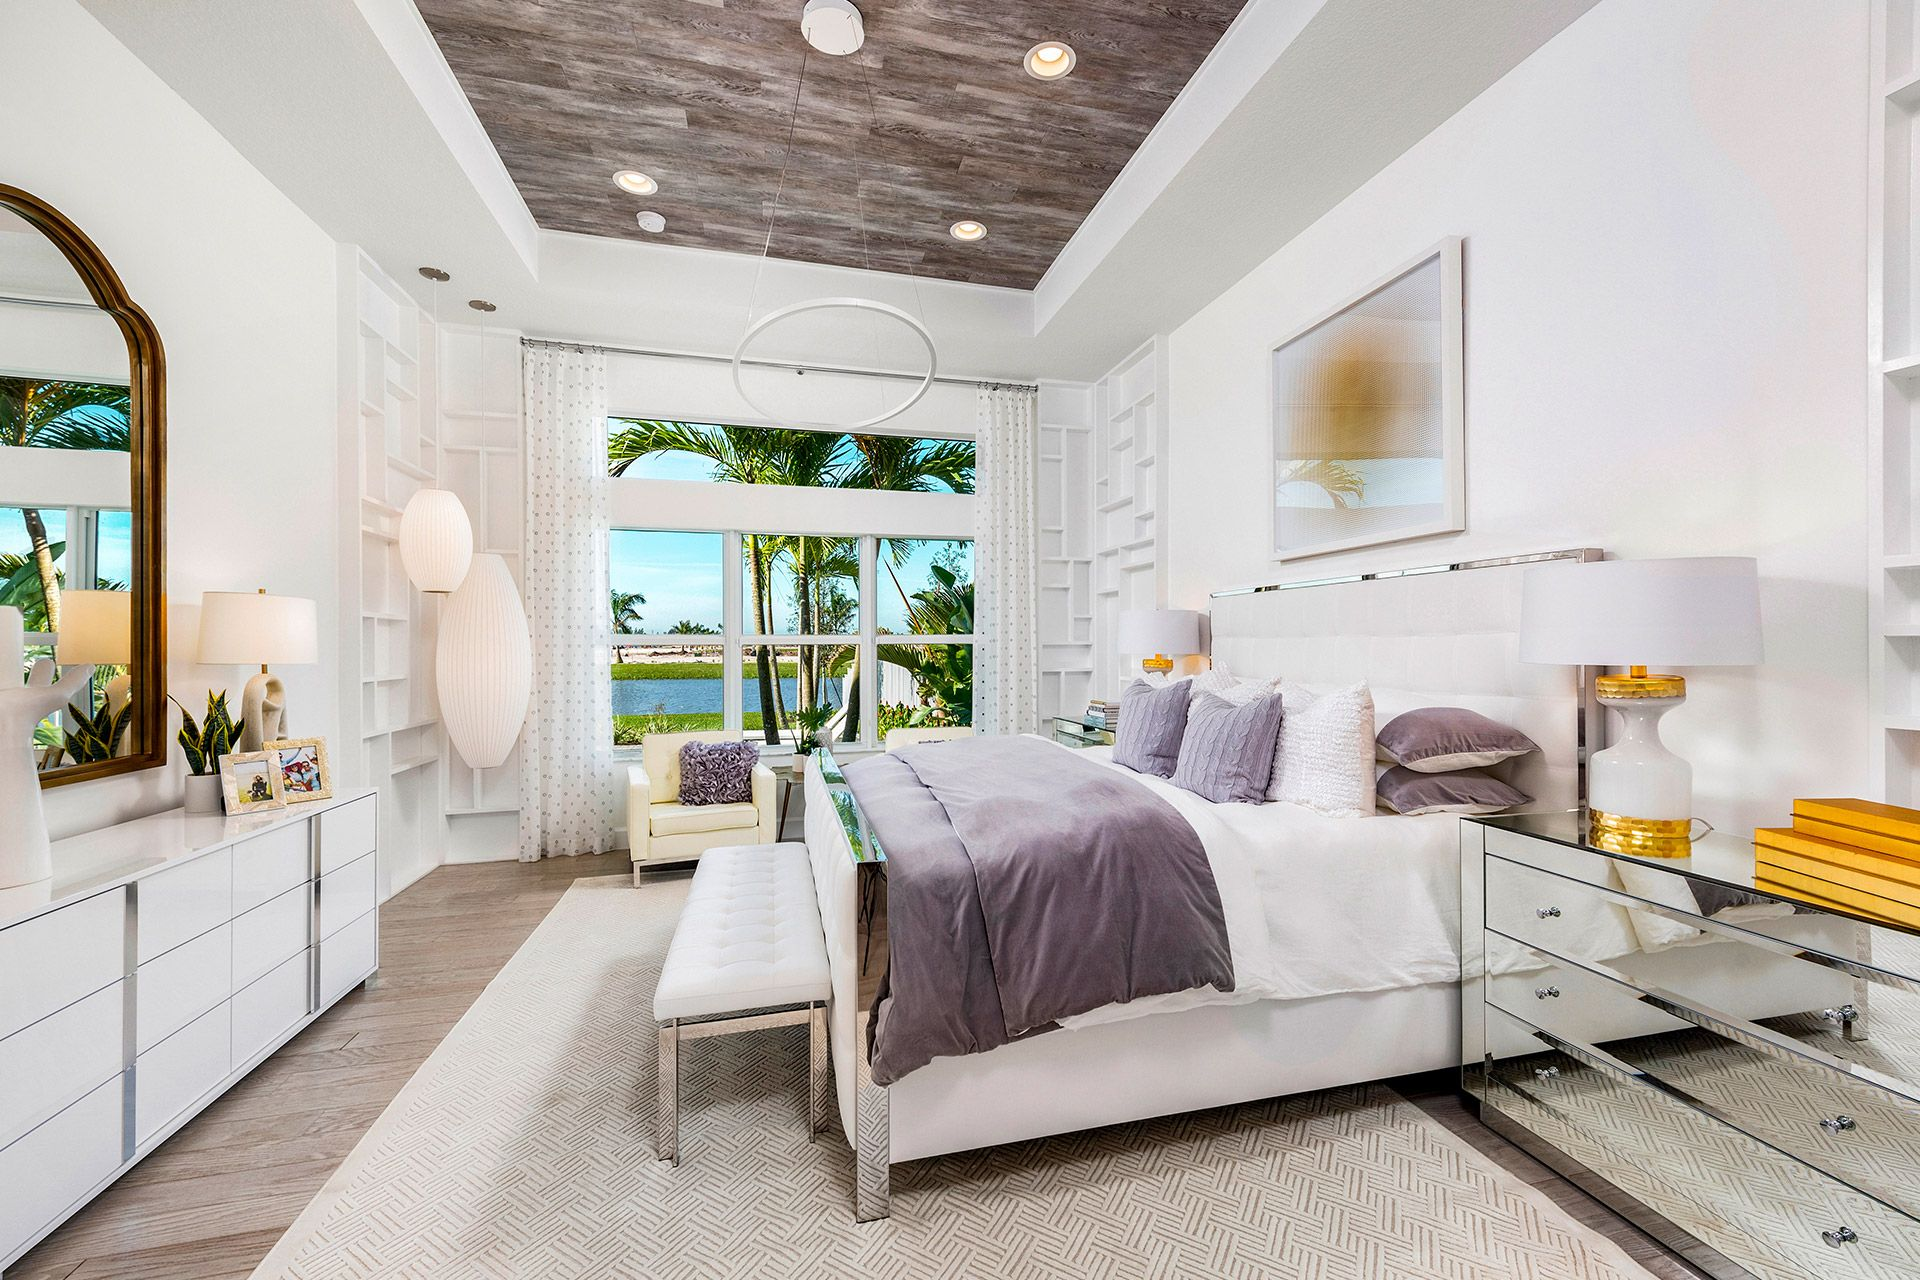 Bedroom featured in the Oceana By GL Homes in Naples, FL